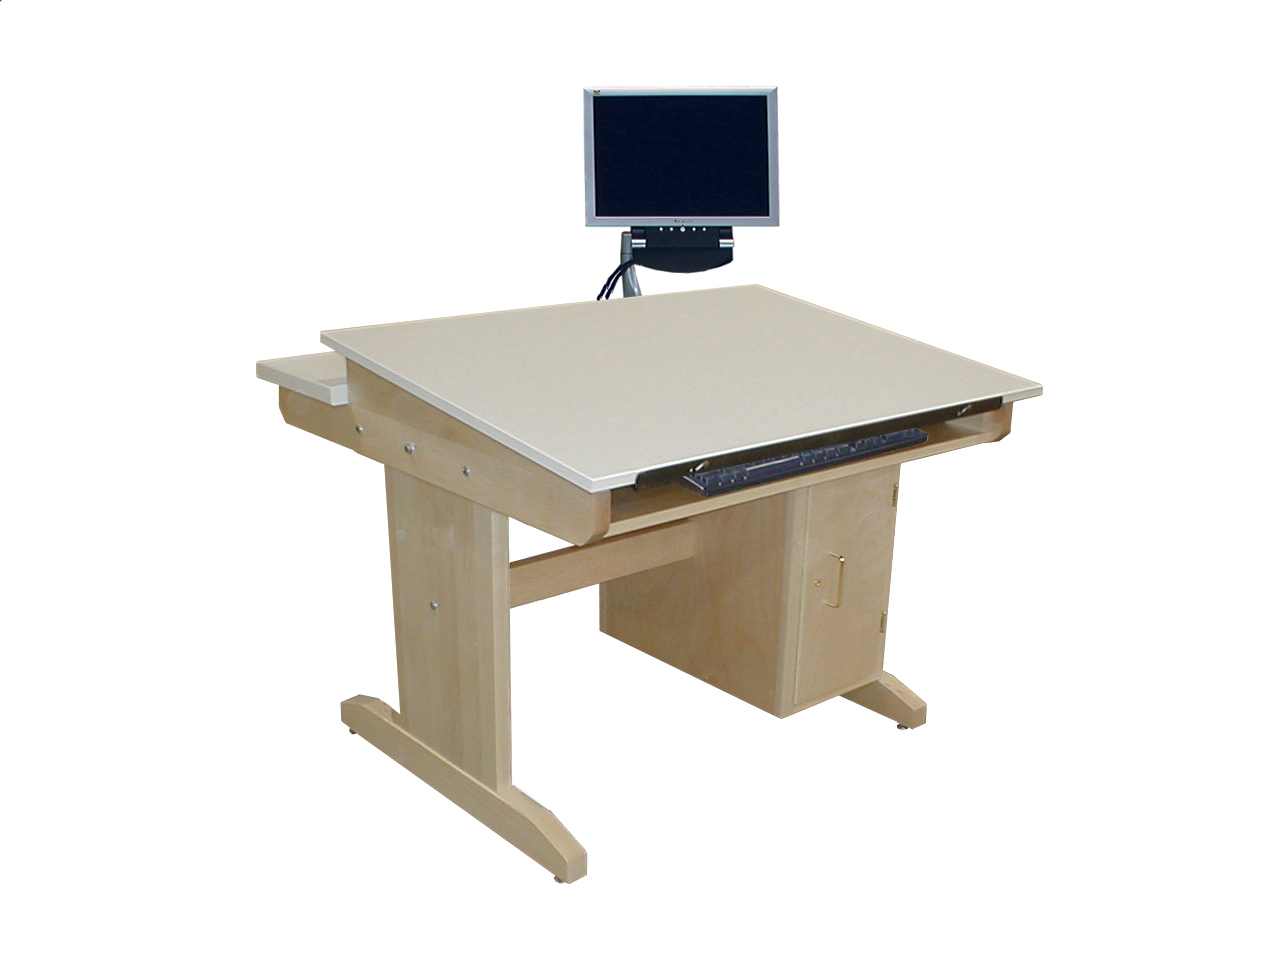 Hann cad drawing table for Solidworks design table zoom